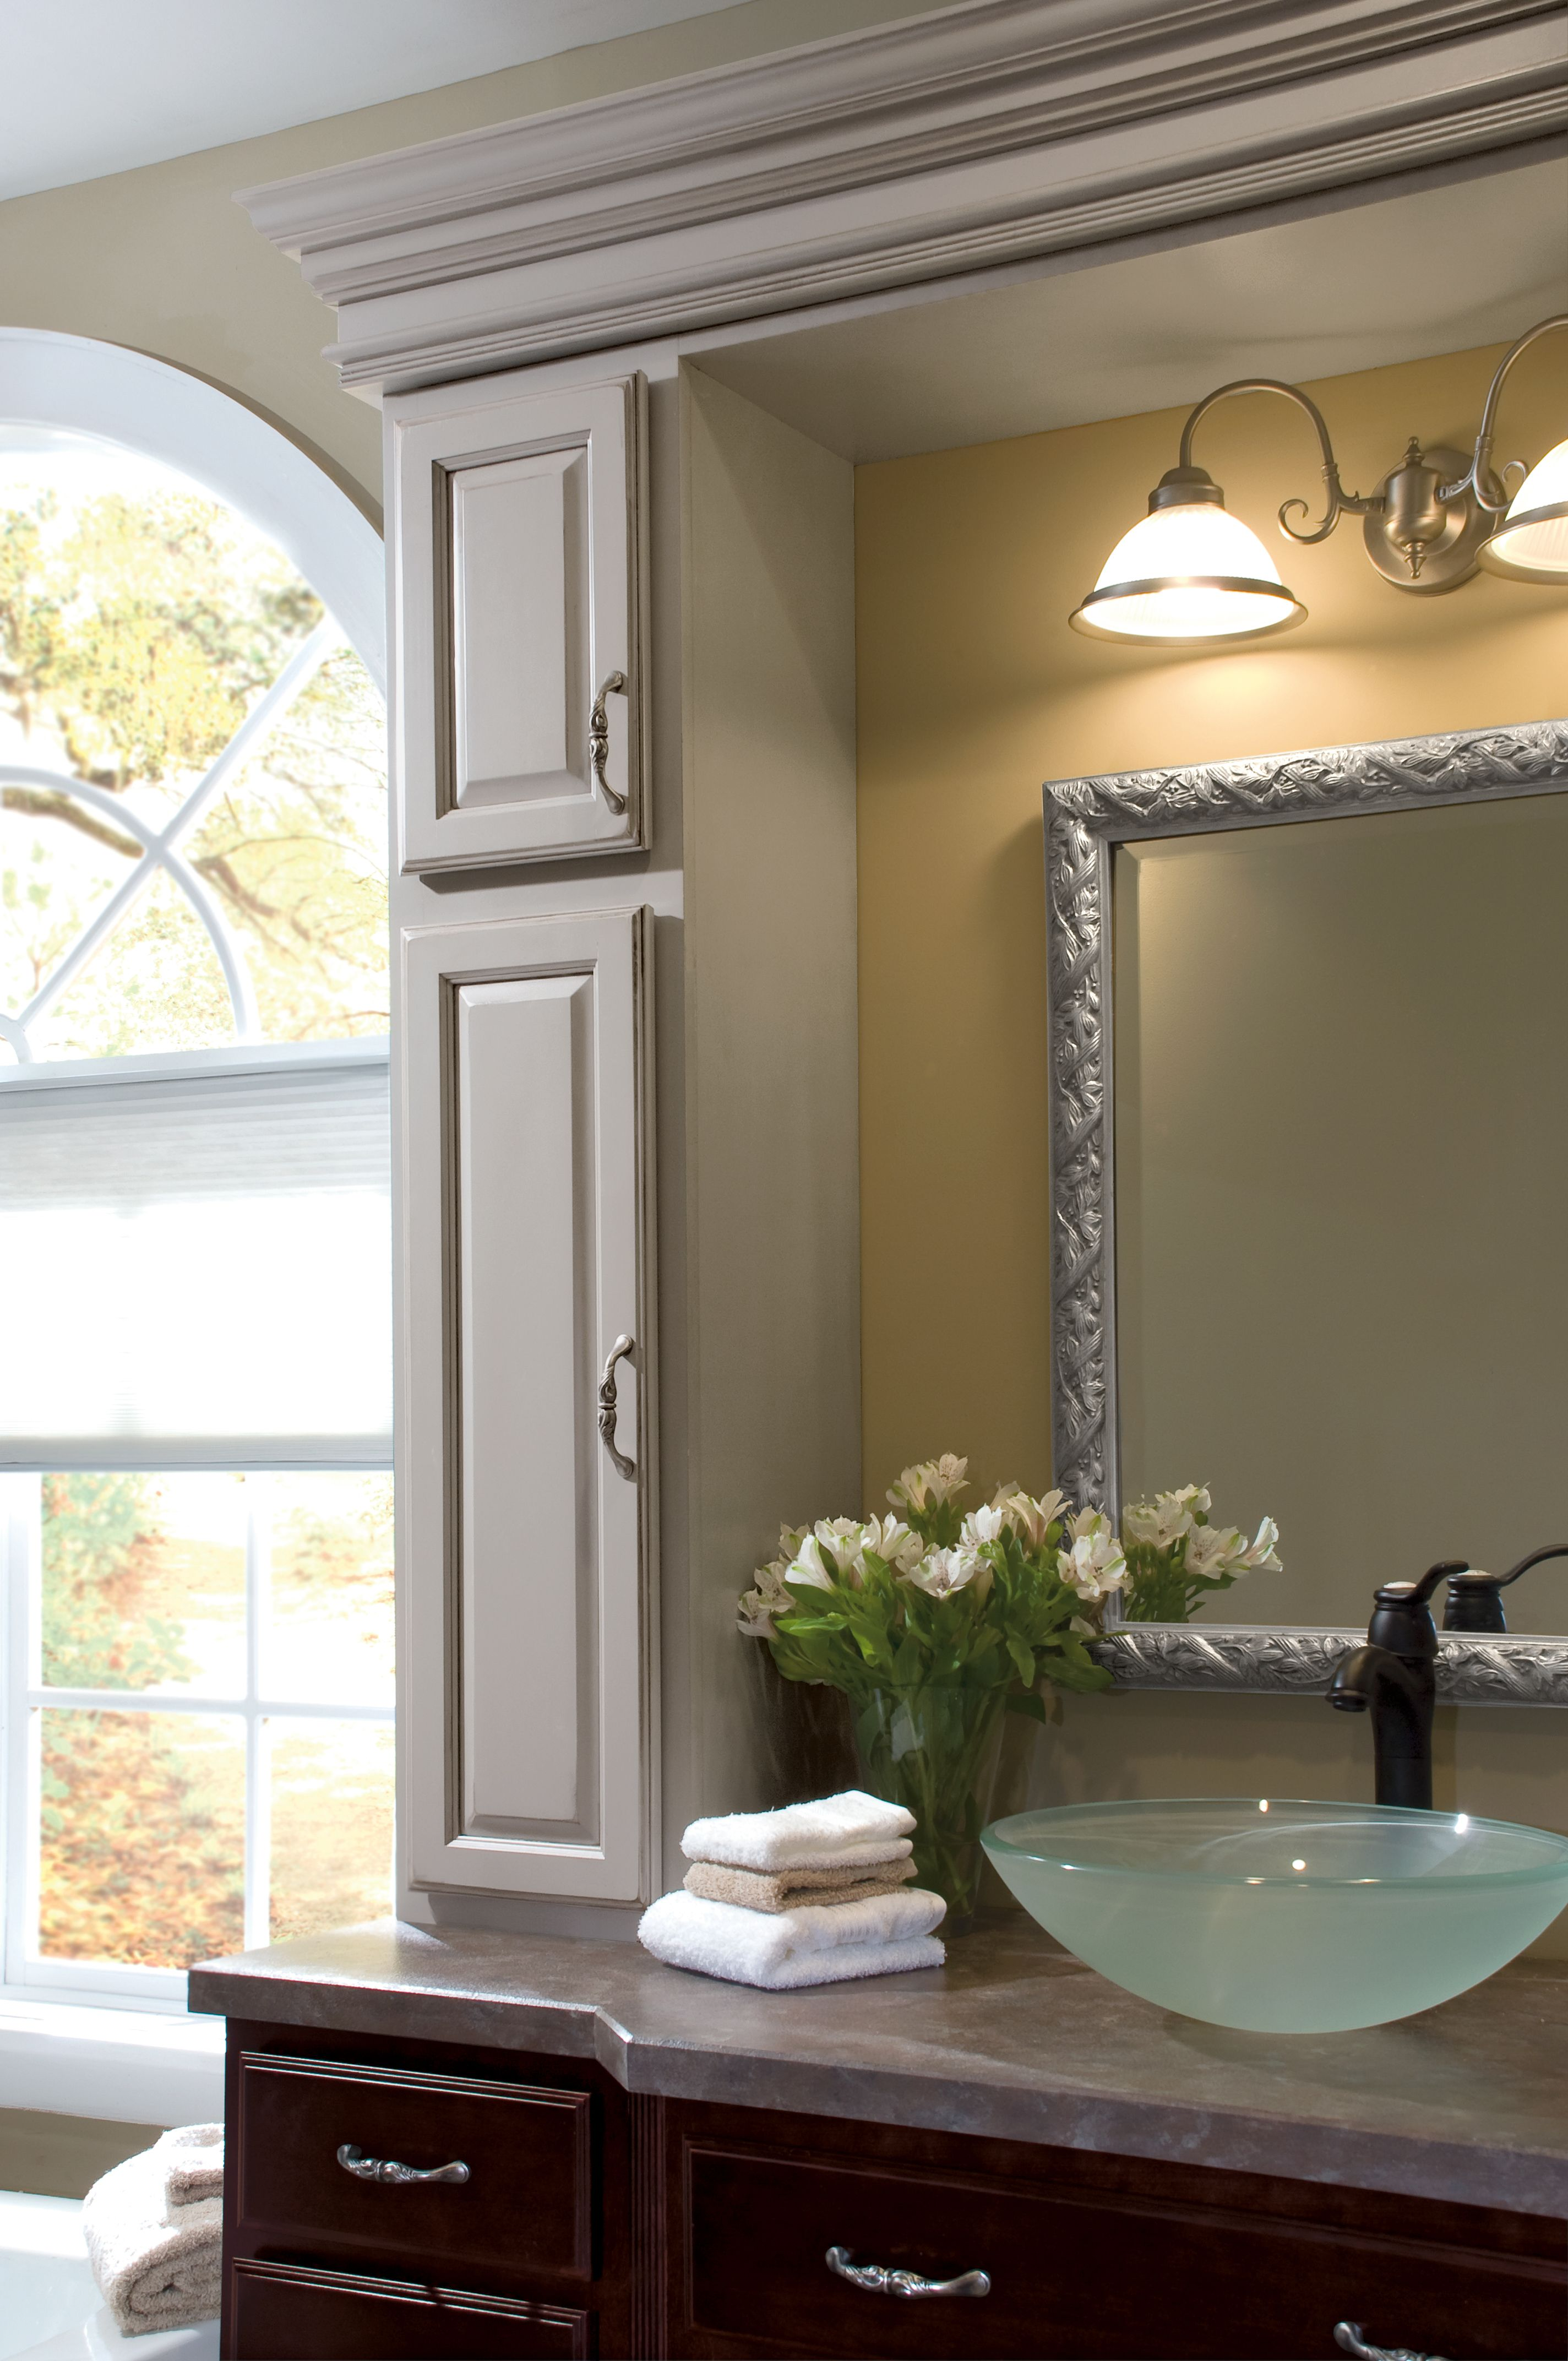 what do you think about this cabinetry by diamond bathroom there is plenty of color contrast in this exquisite room